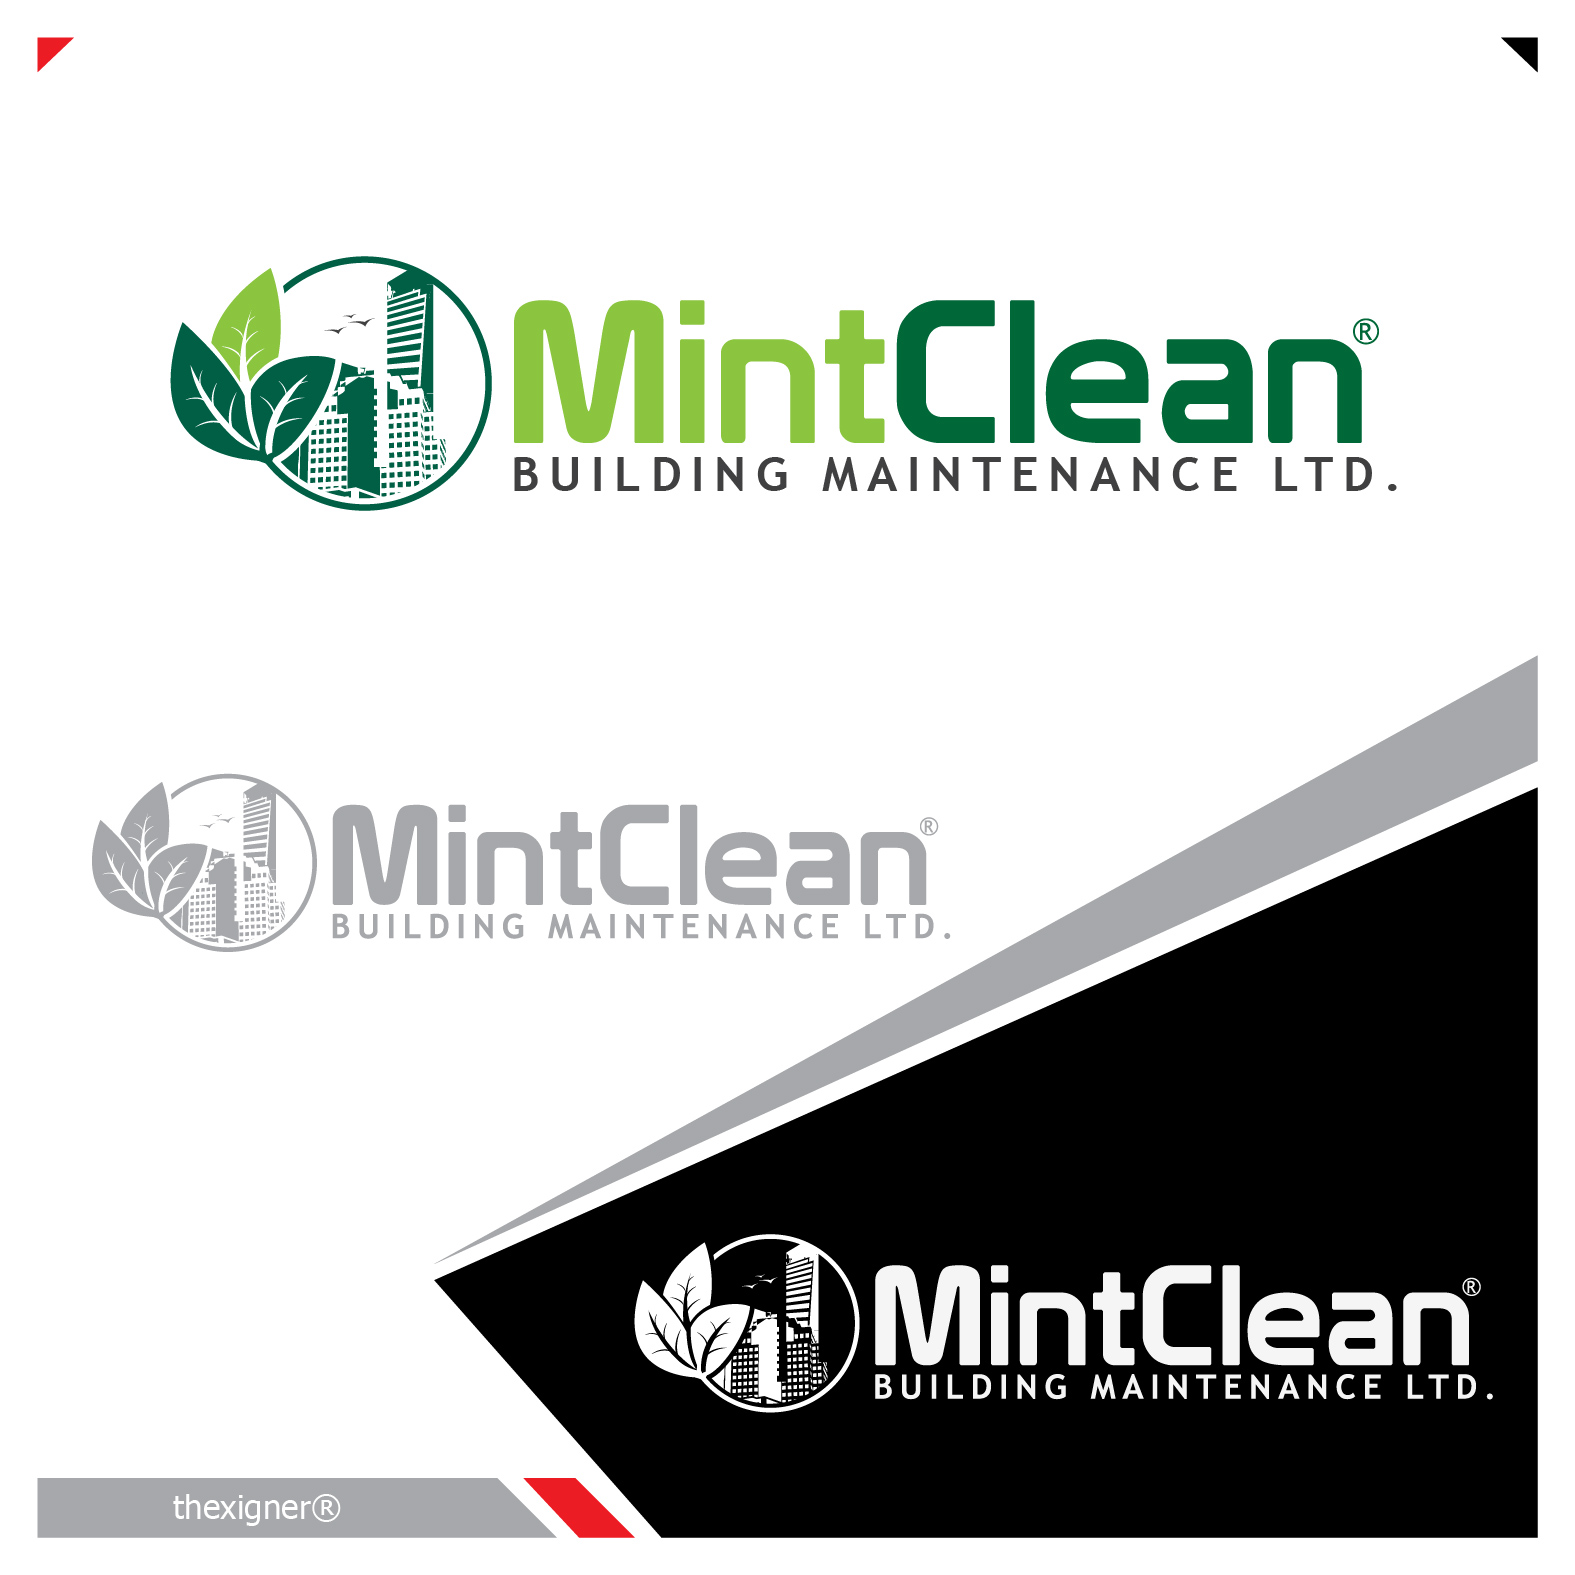 Logo Design by lagalag - Entry No. 103 in the Logo Design Contest MintClean Building Maintenance Ltd. Logo Design.